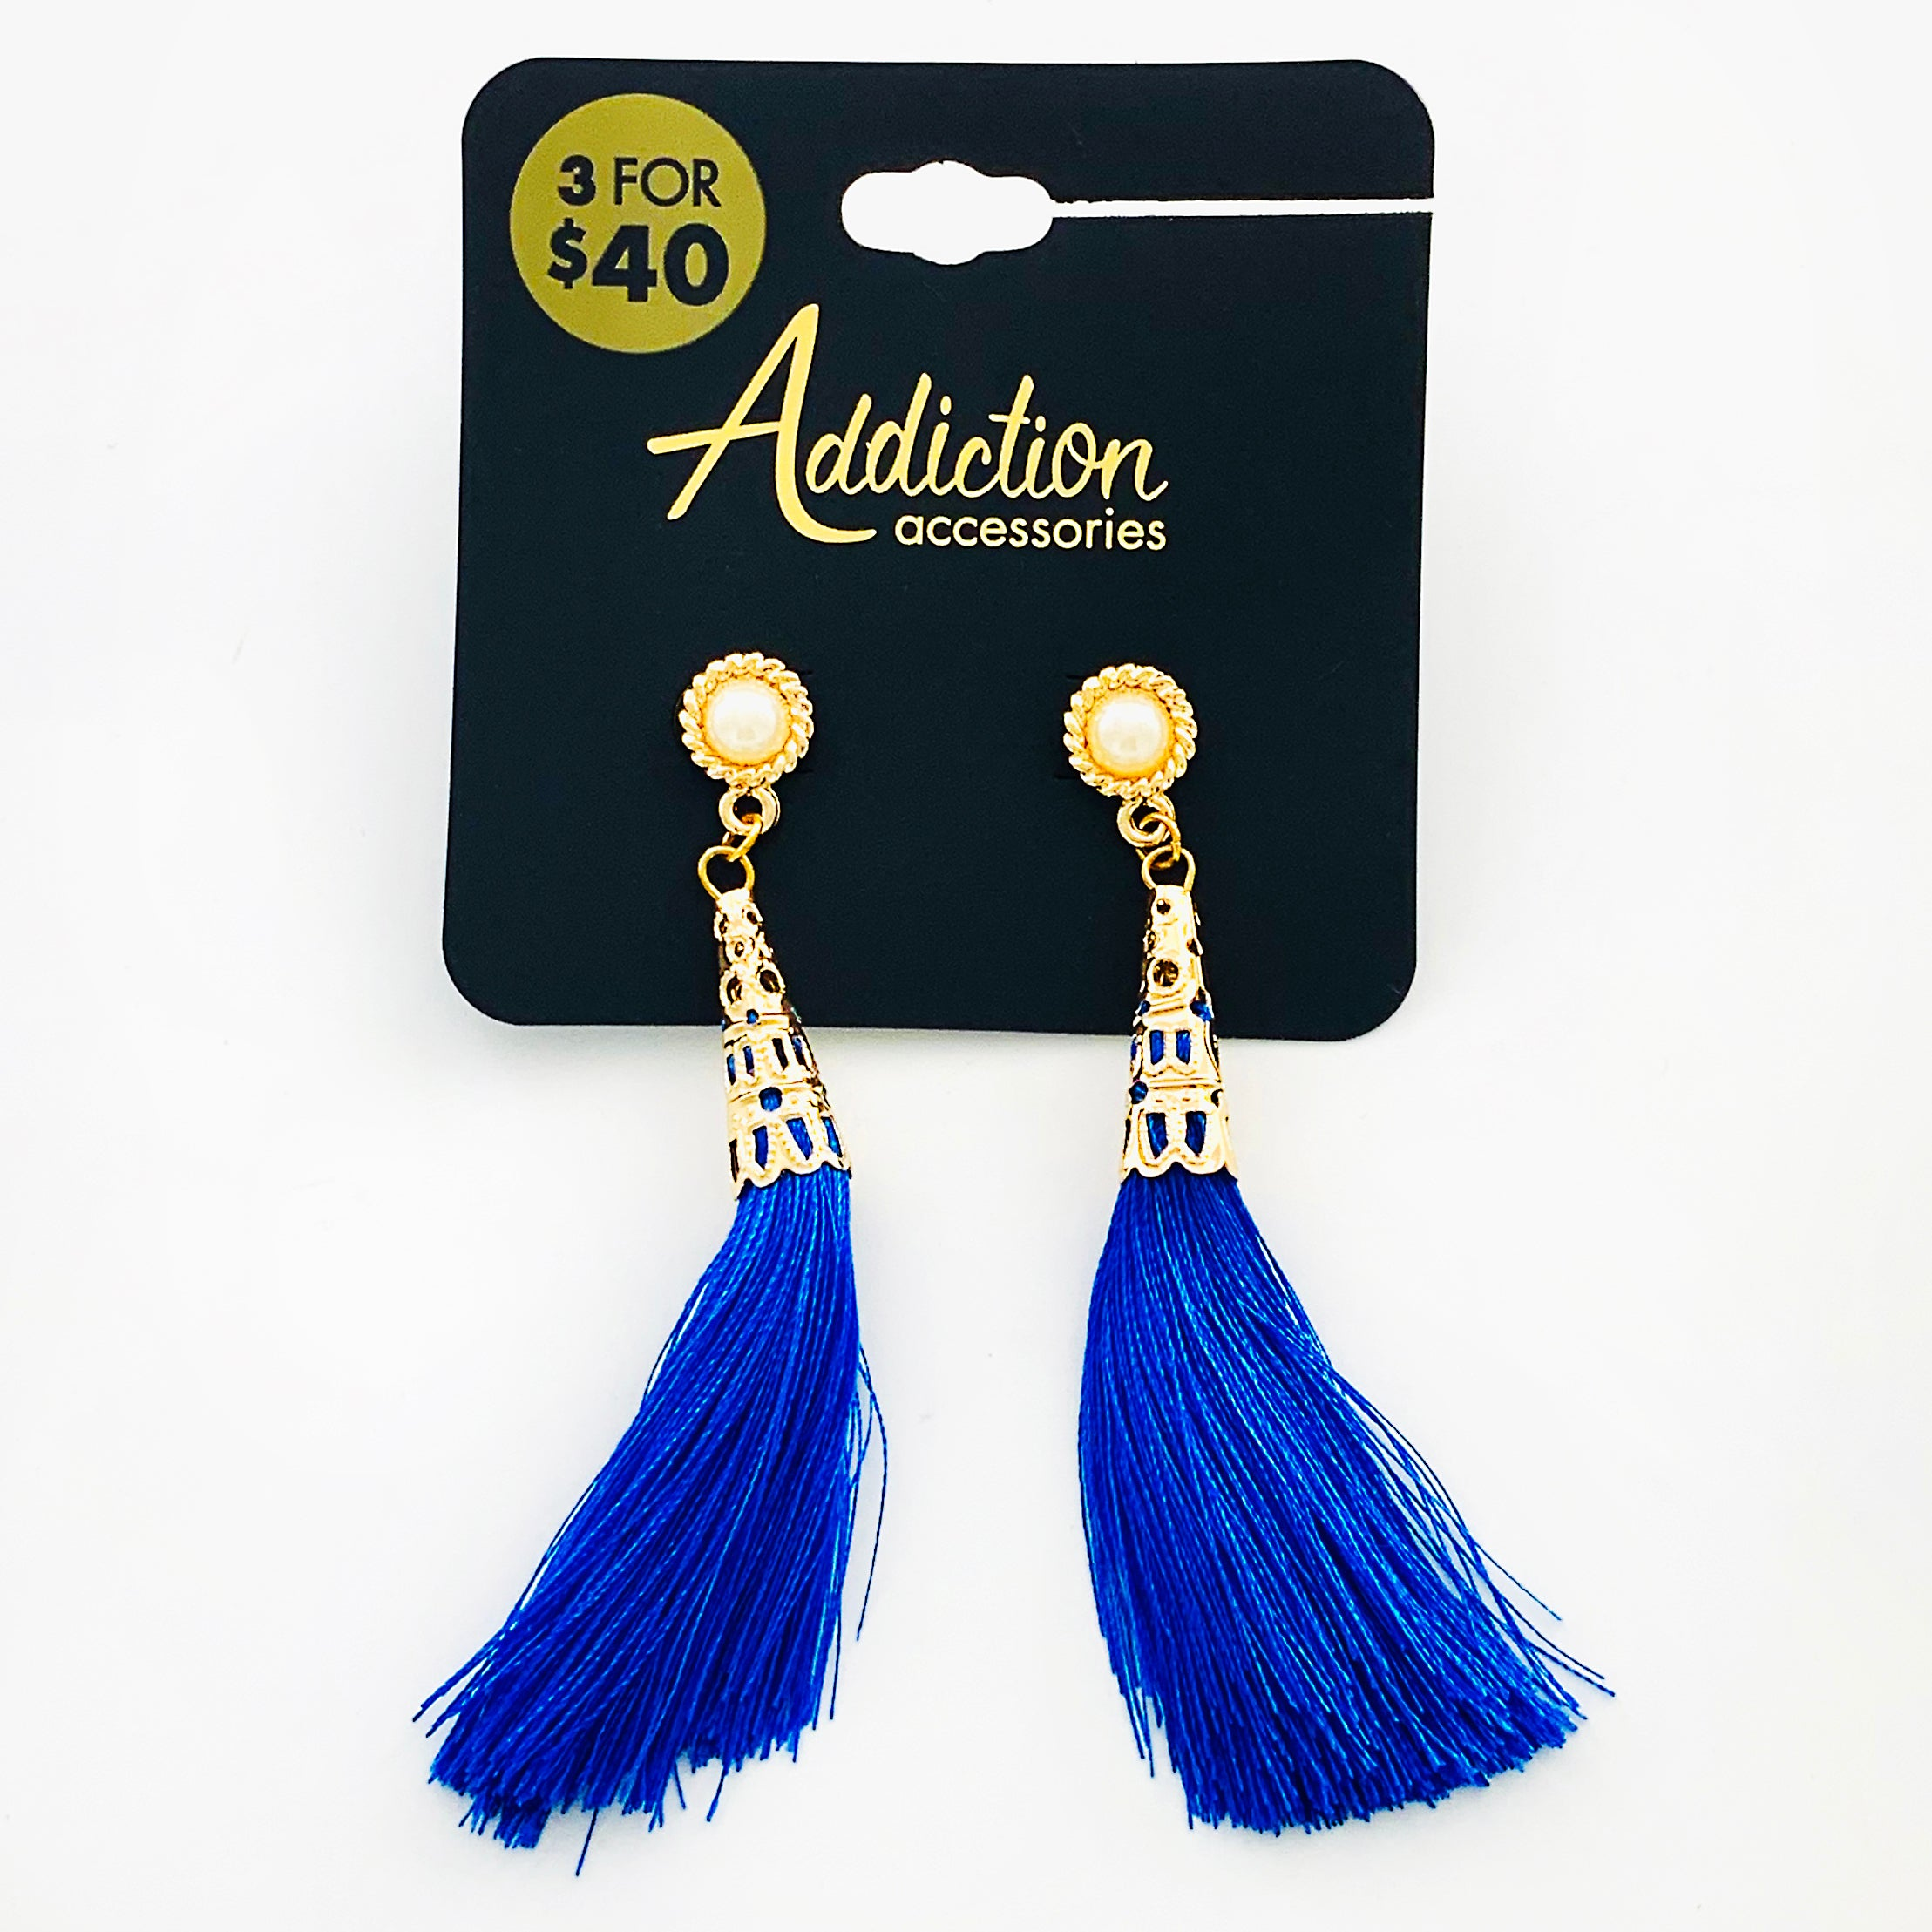 Gold earrings with royal blue tassels